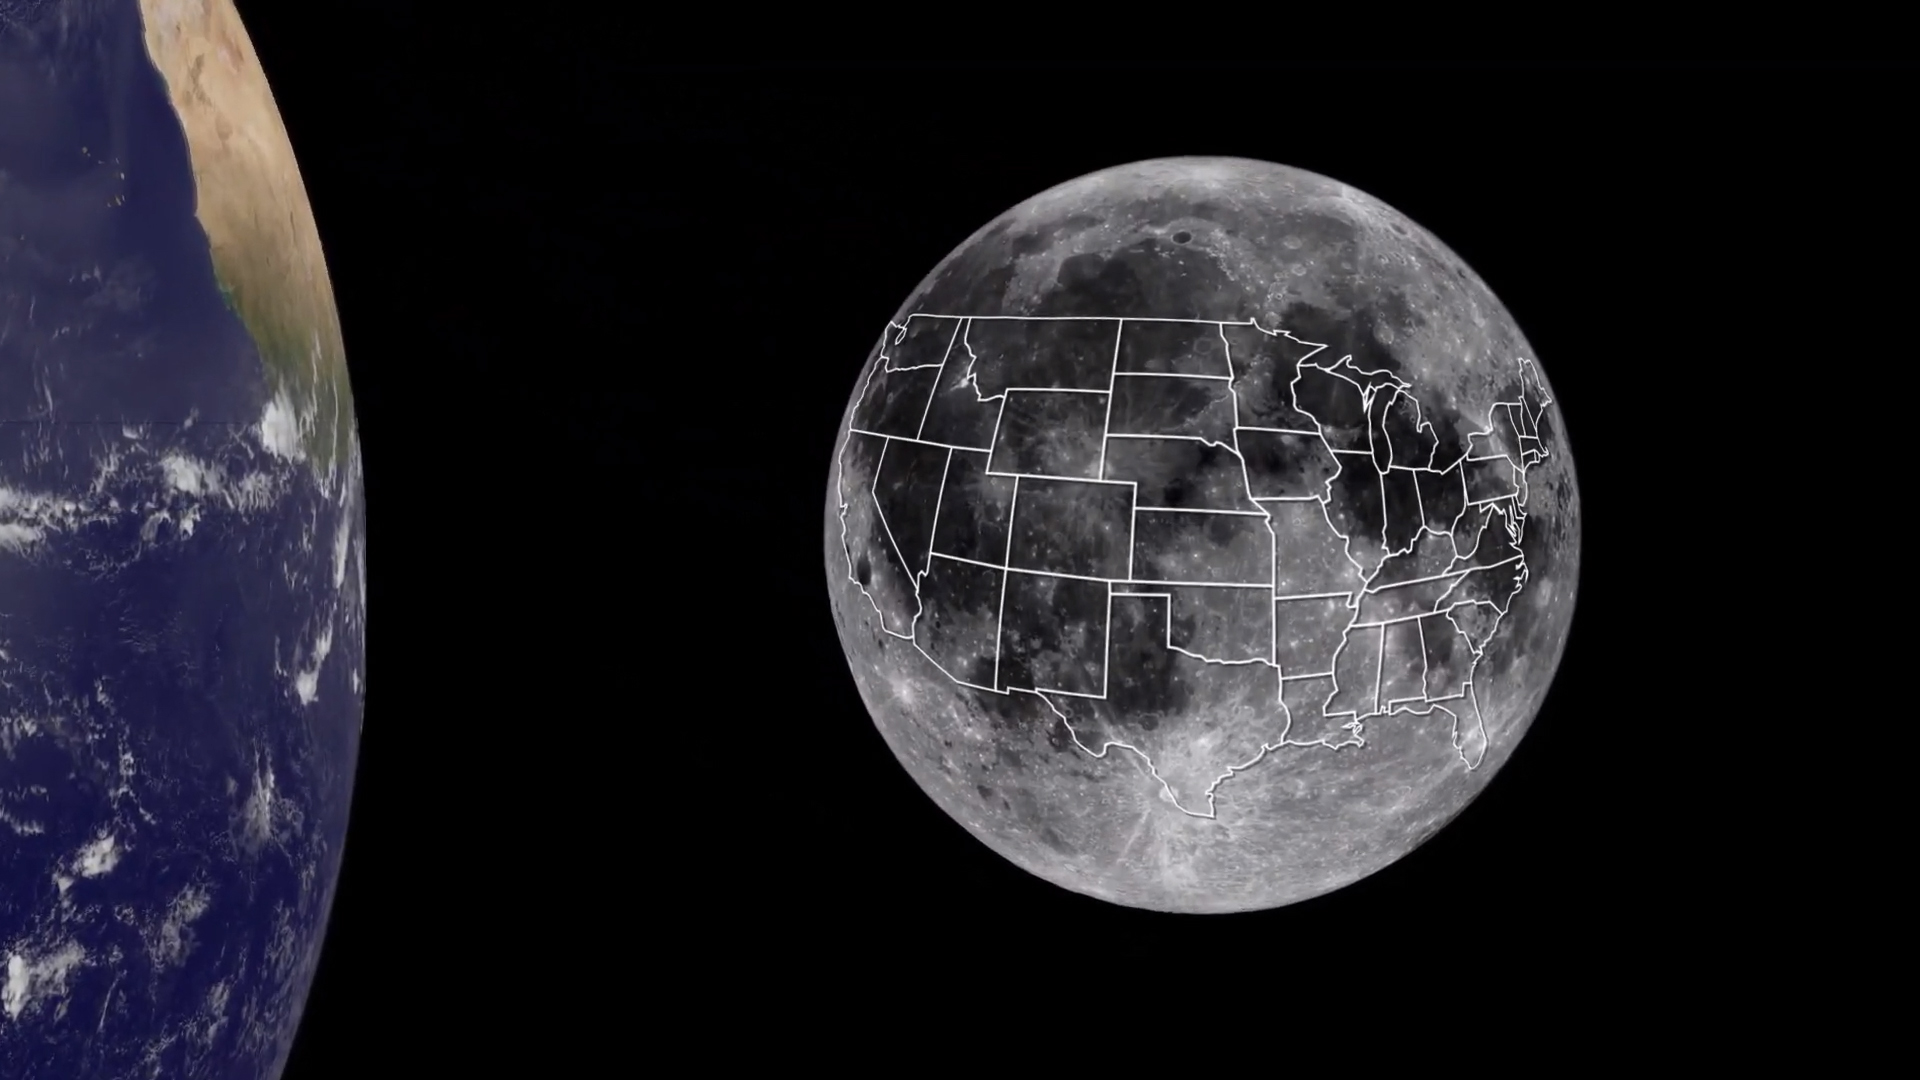 Illustration showing a map of the United States covering most of the Moon's near side.